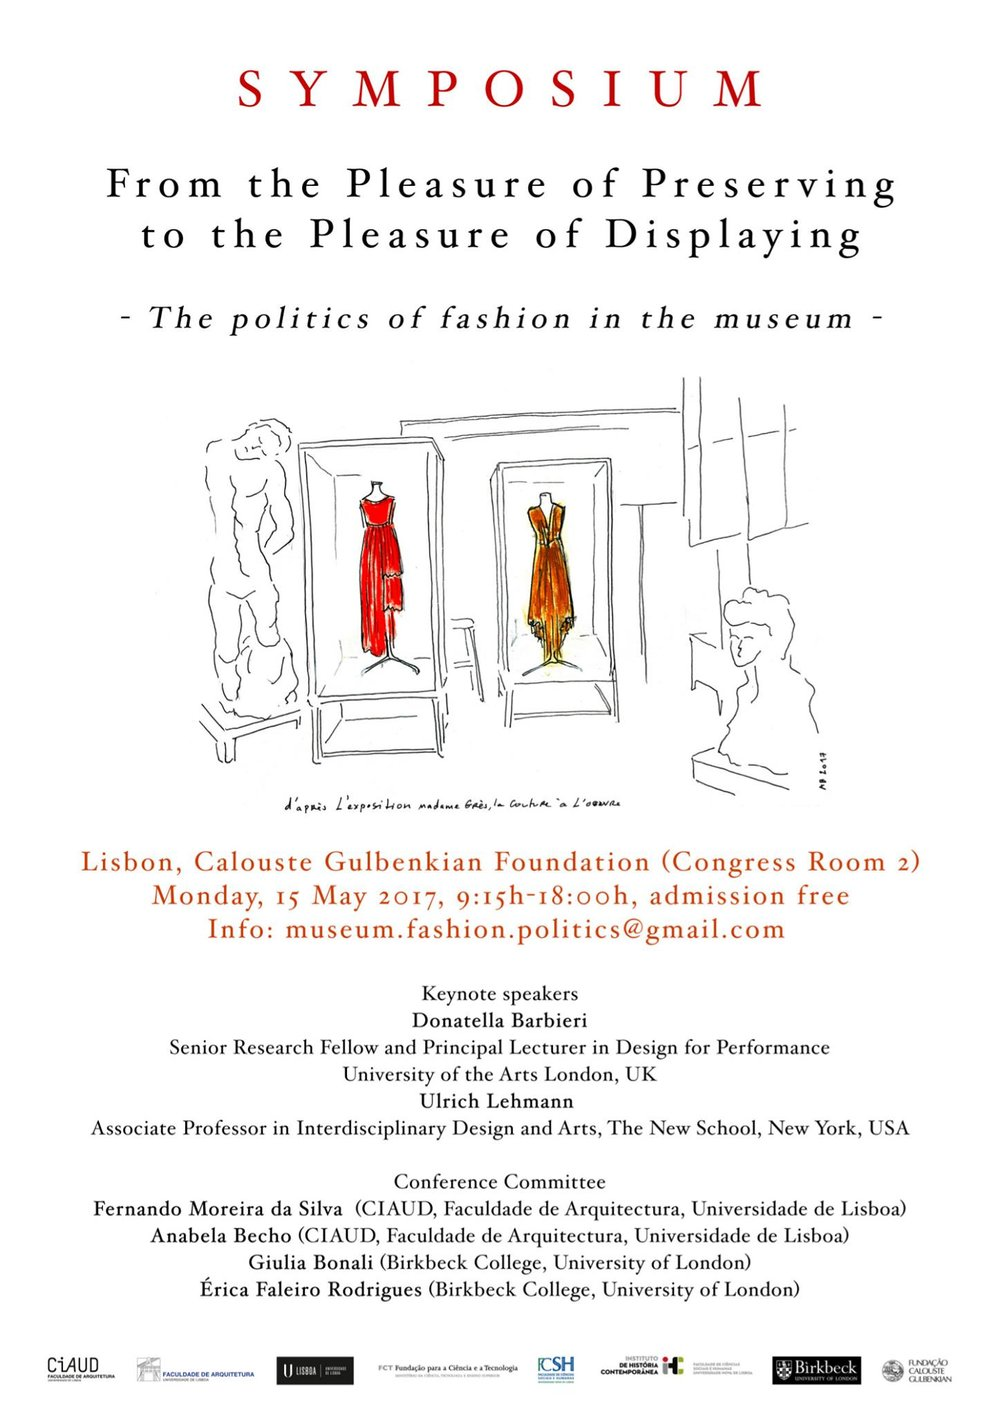 Symposium - From the pleasure of preserving to the pleasure displaying | The Politics of fashion in the MuseumPresenting the paper: Fashion in the expanded field: situating interdisciplinary fashion practices in the museum in the 21st century